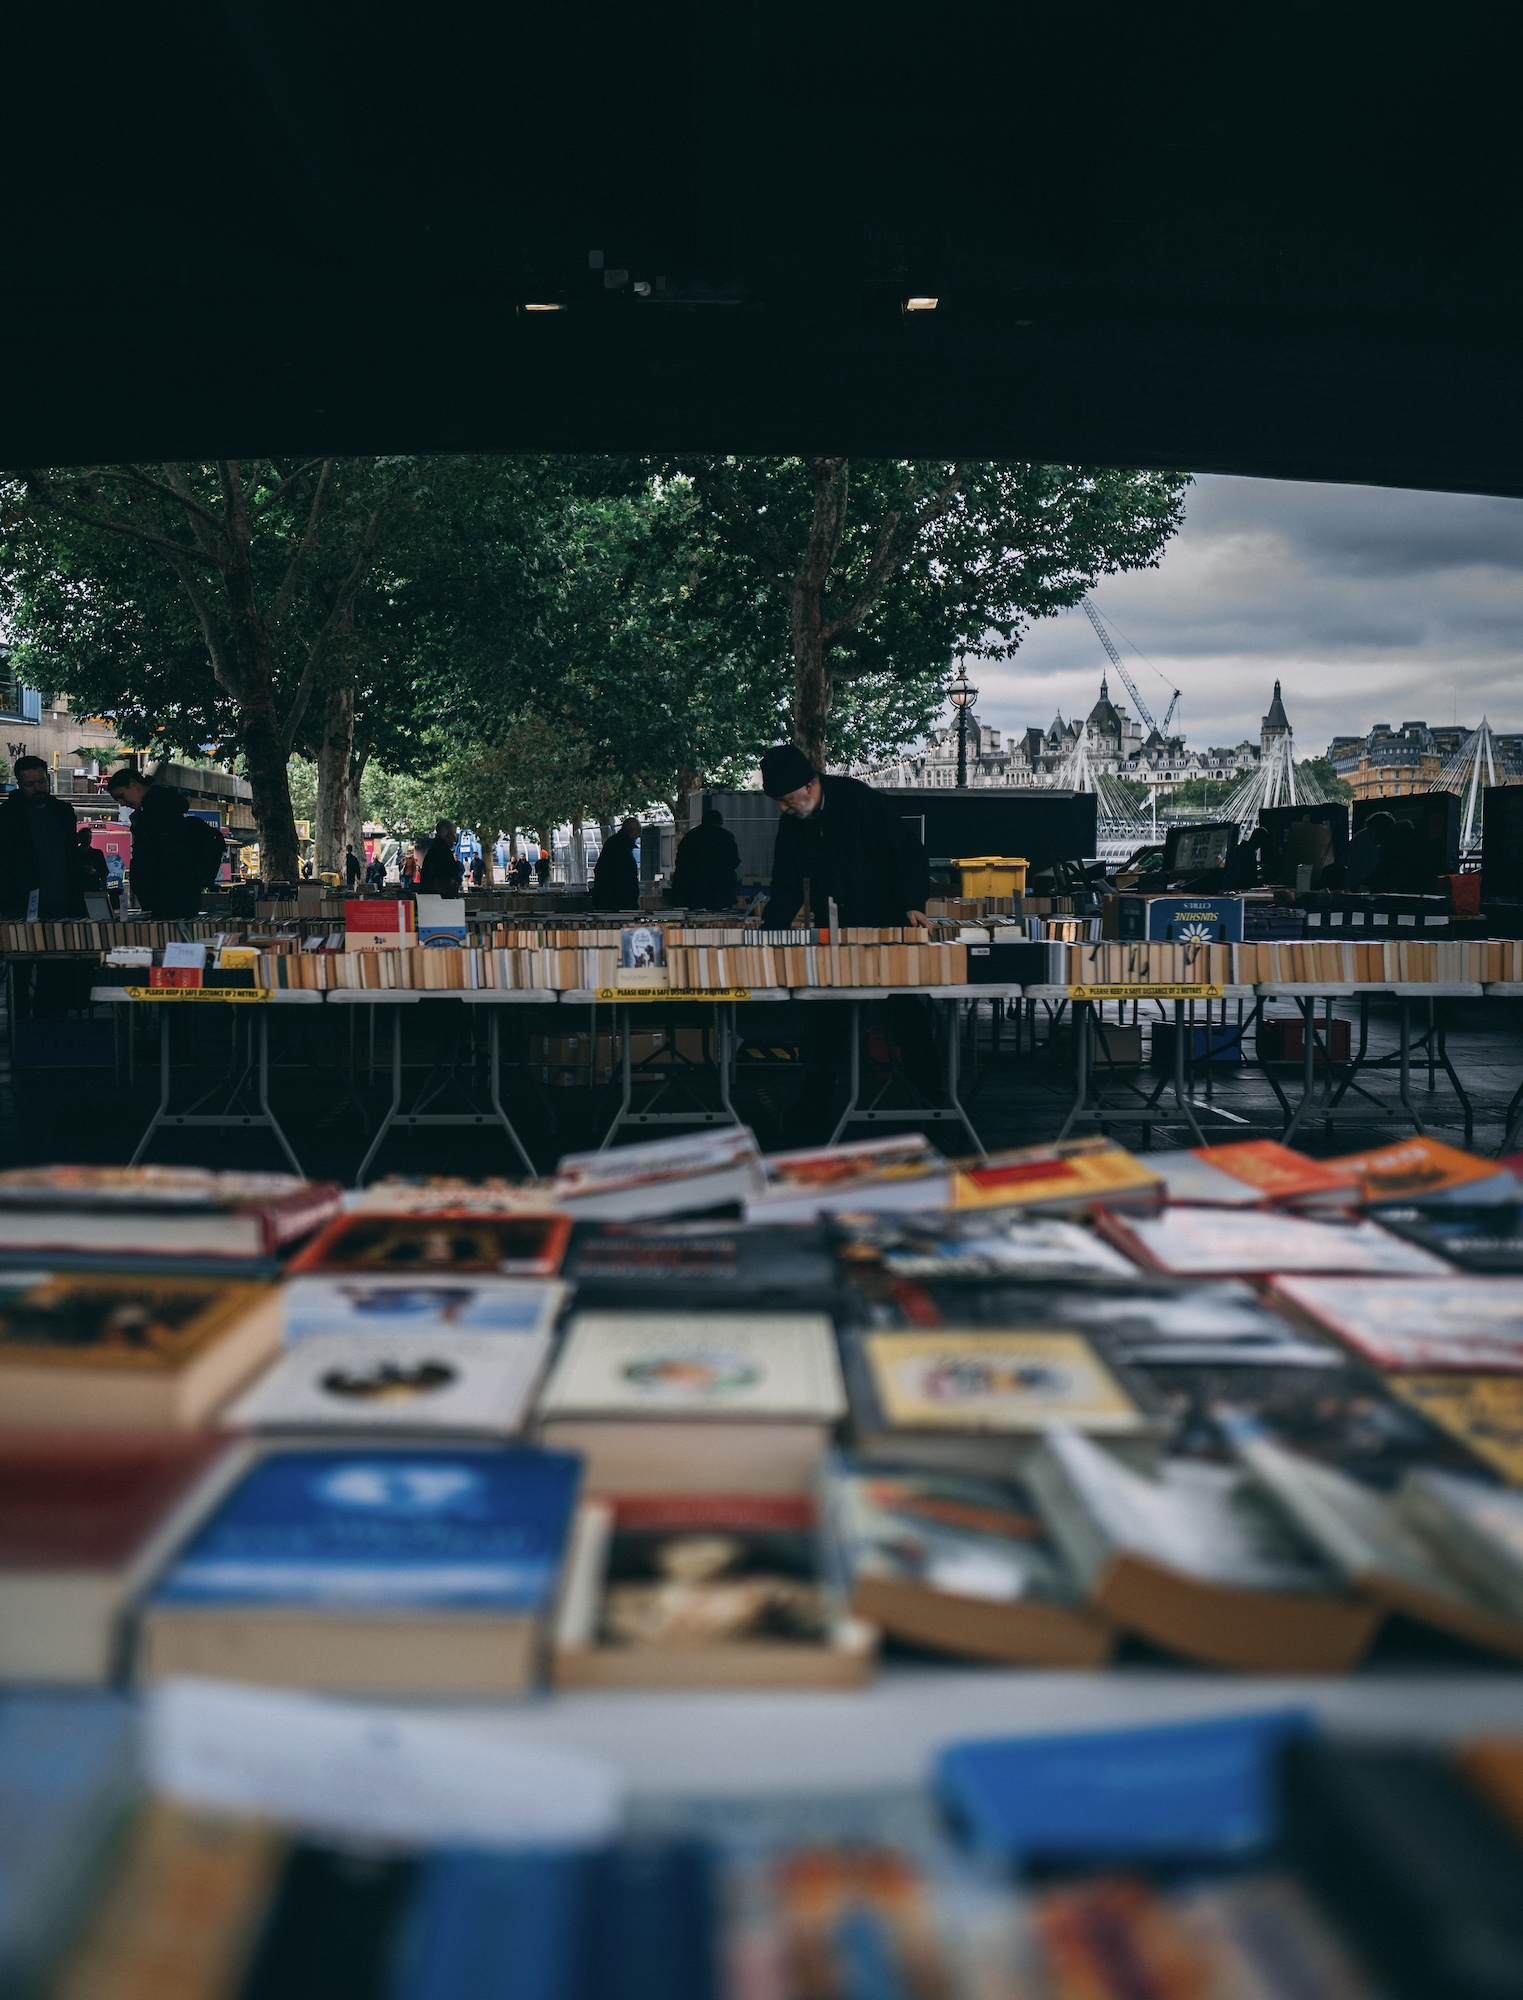 Browsing through books on the South Bank, London